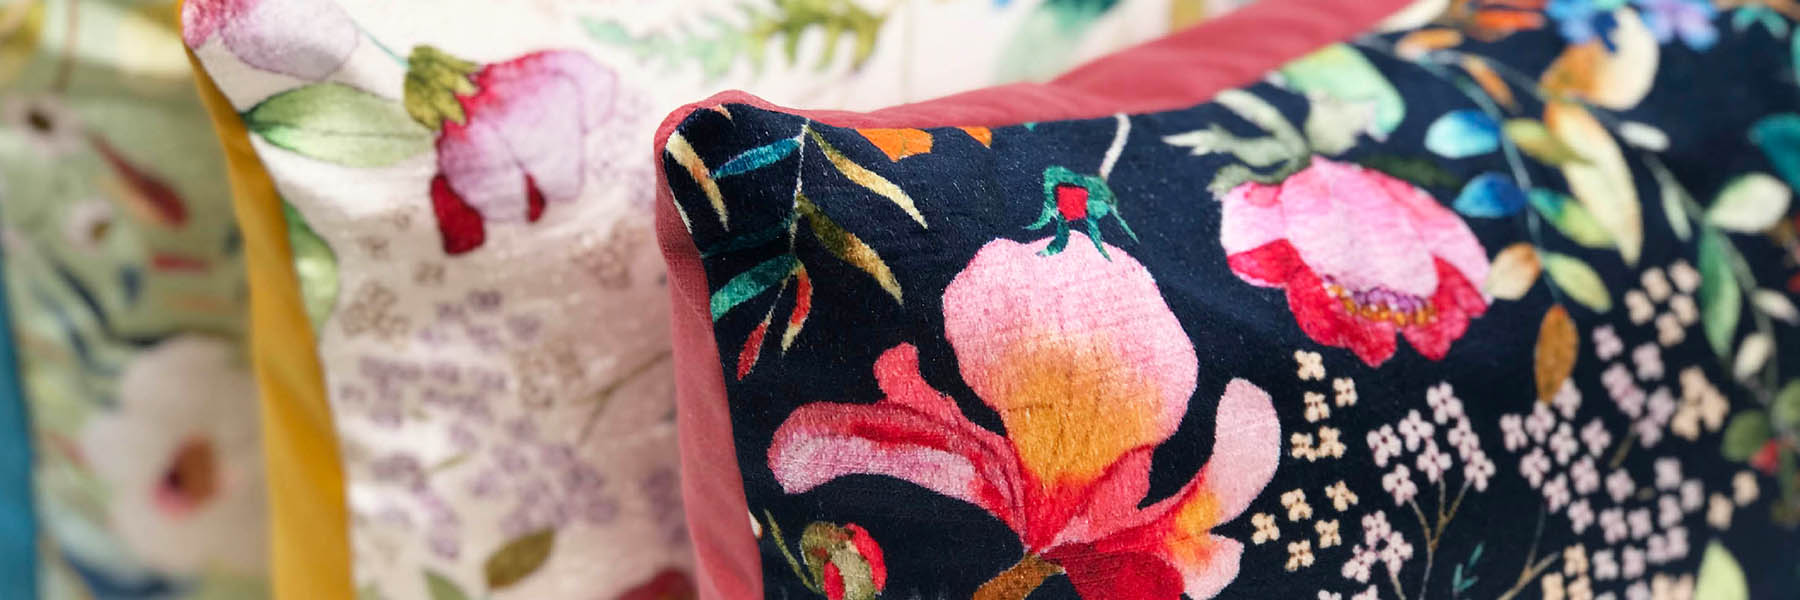 cushions velvet floral luxury Philip keighley clay